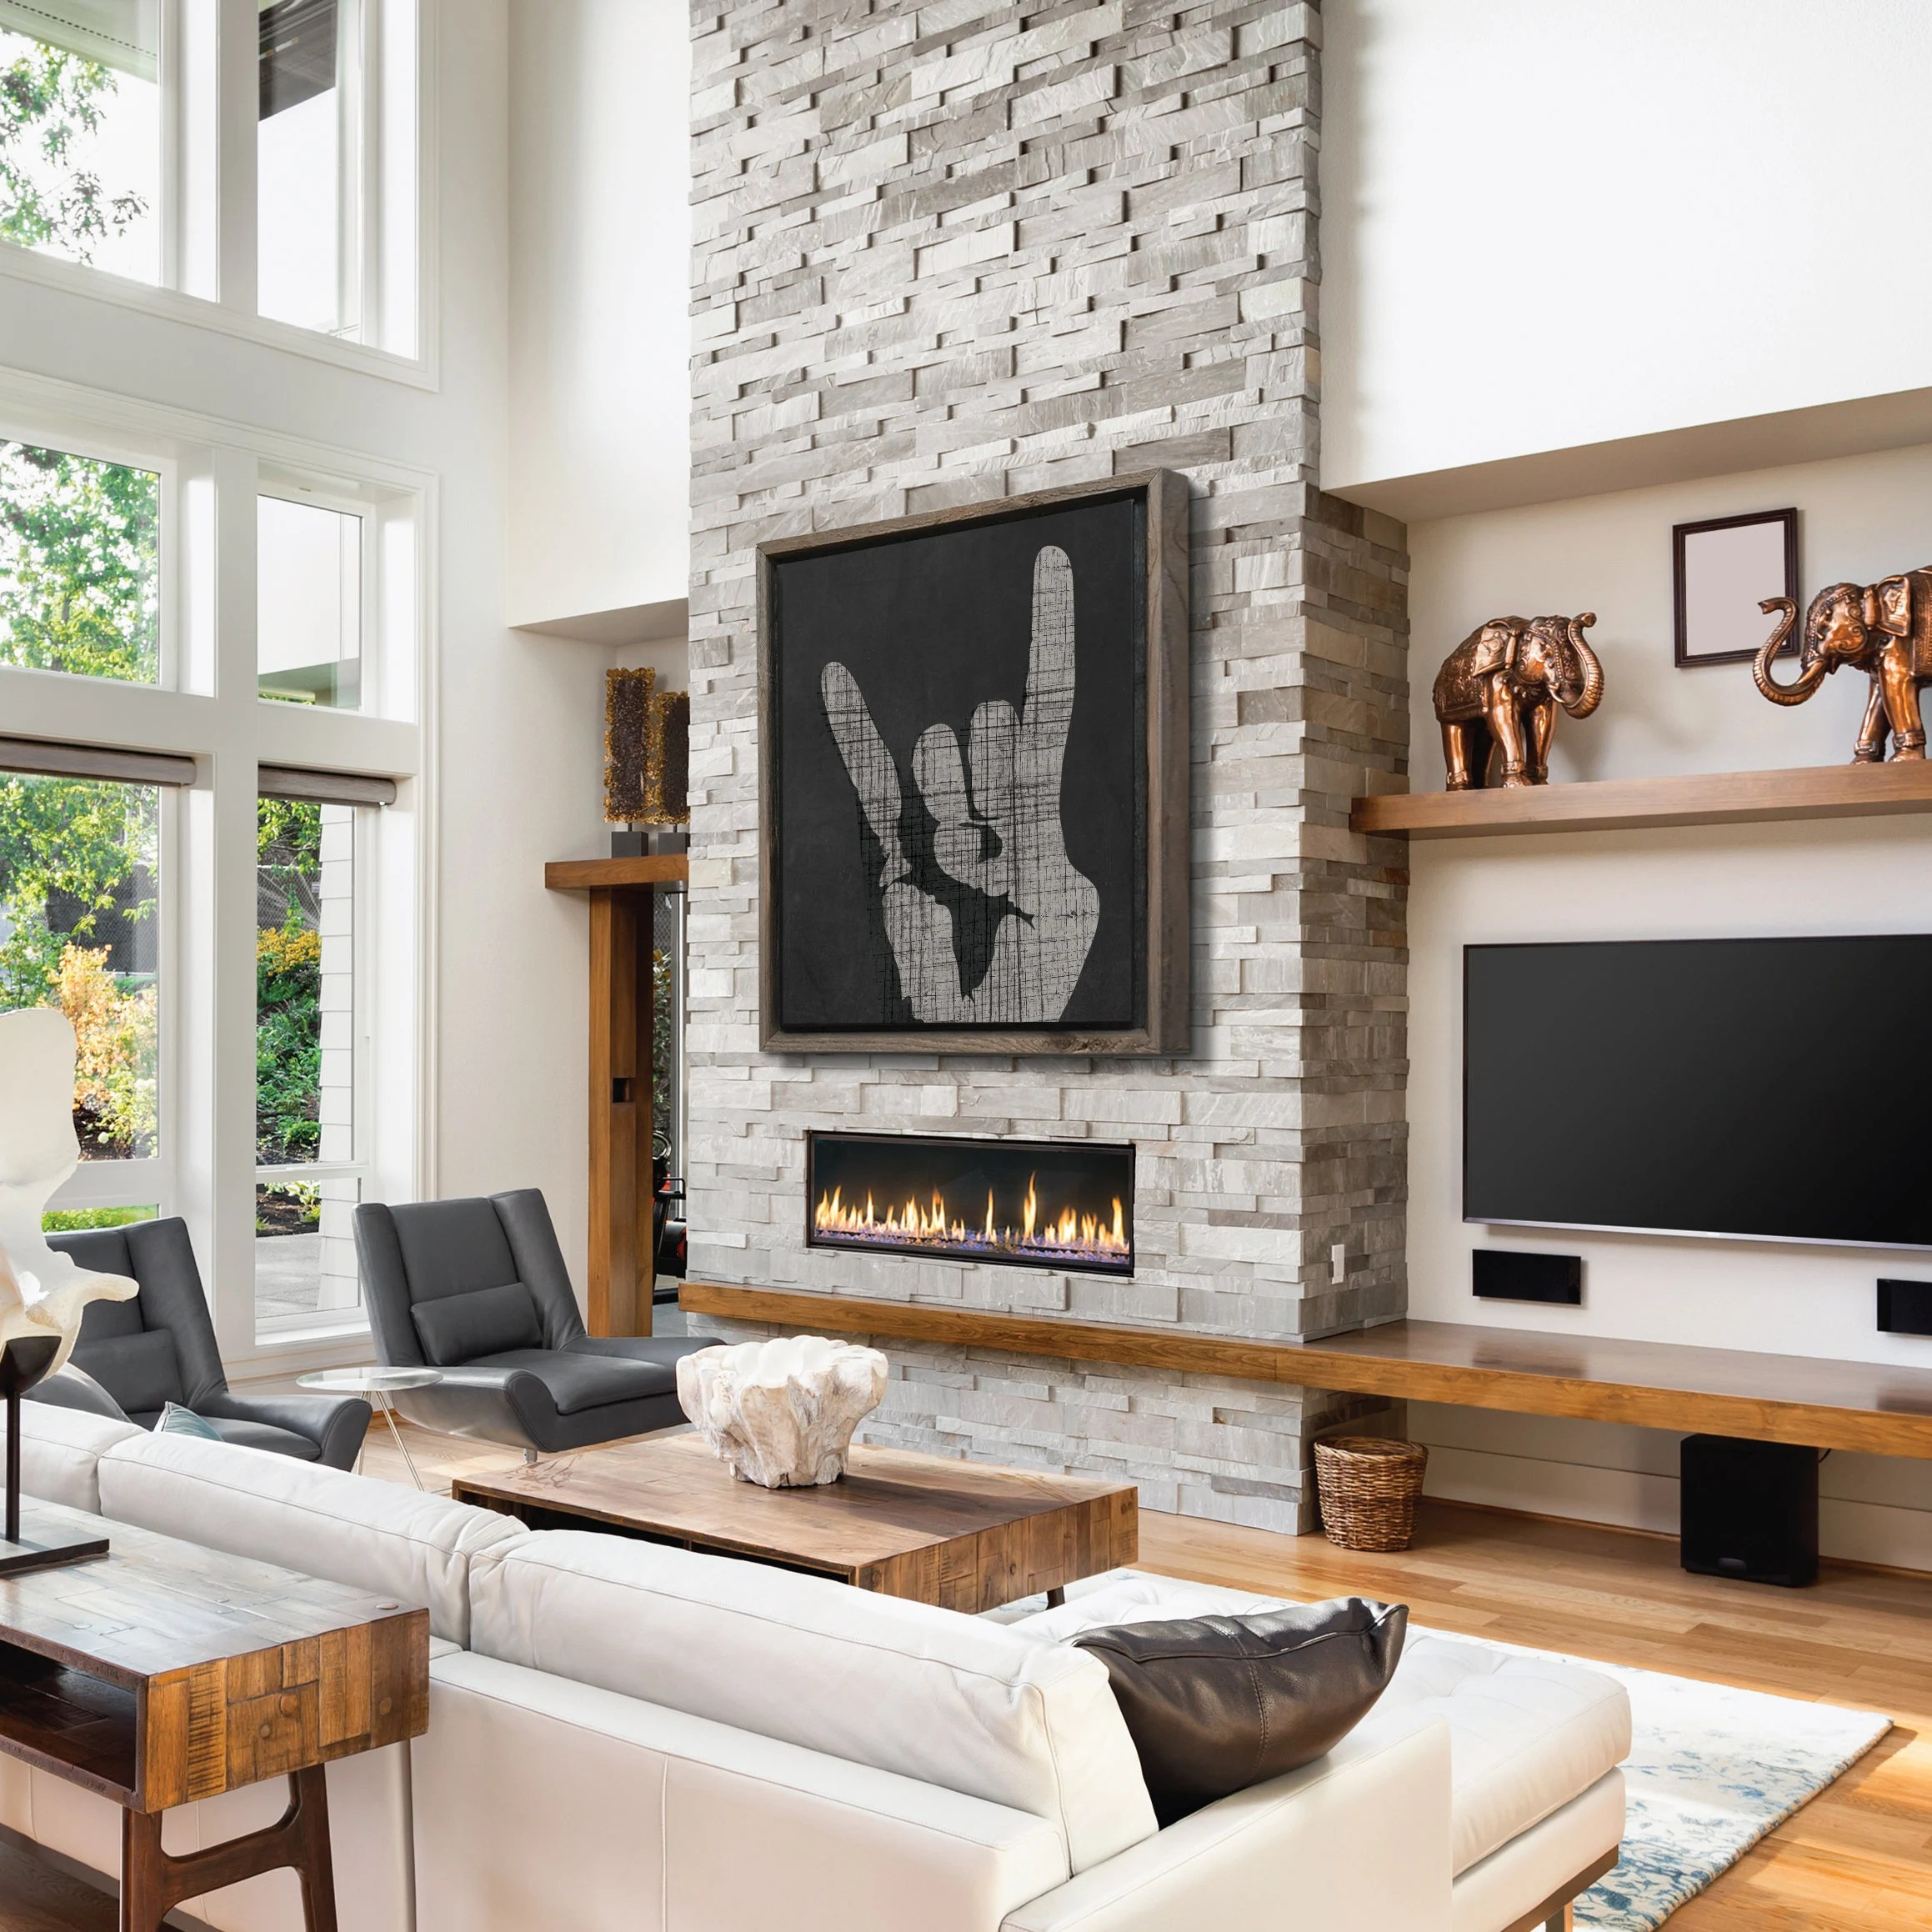 large pictures for living room wall need help decorating my art etsy rock on canvas rustic modern home decor birthday gift housewarming black him kids reclaimed